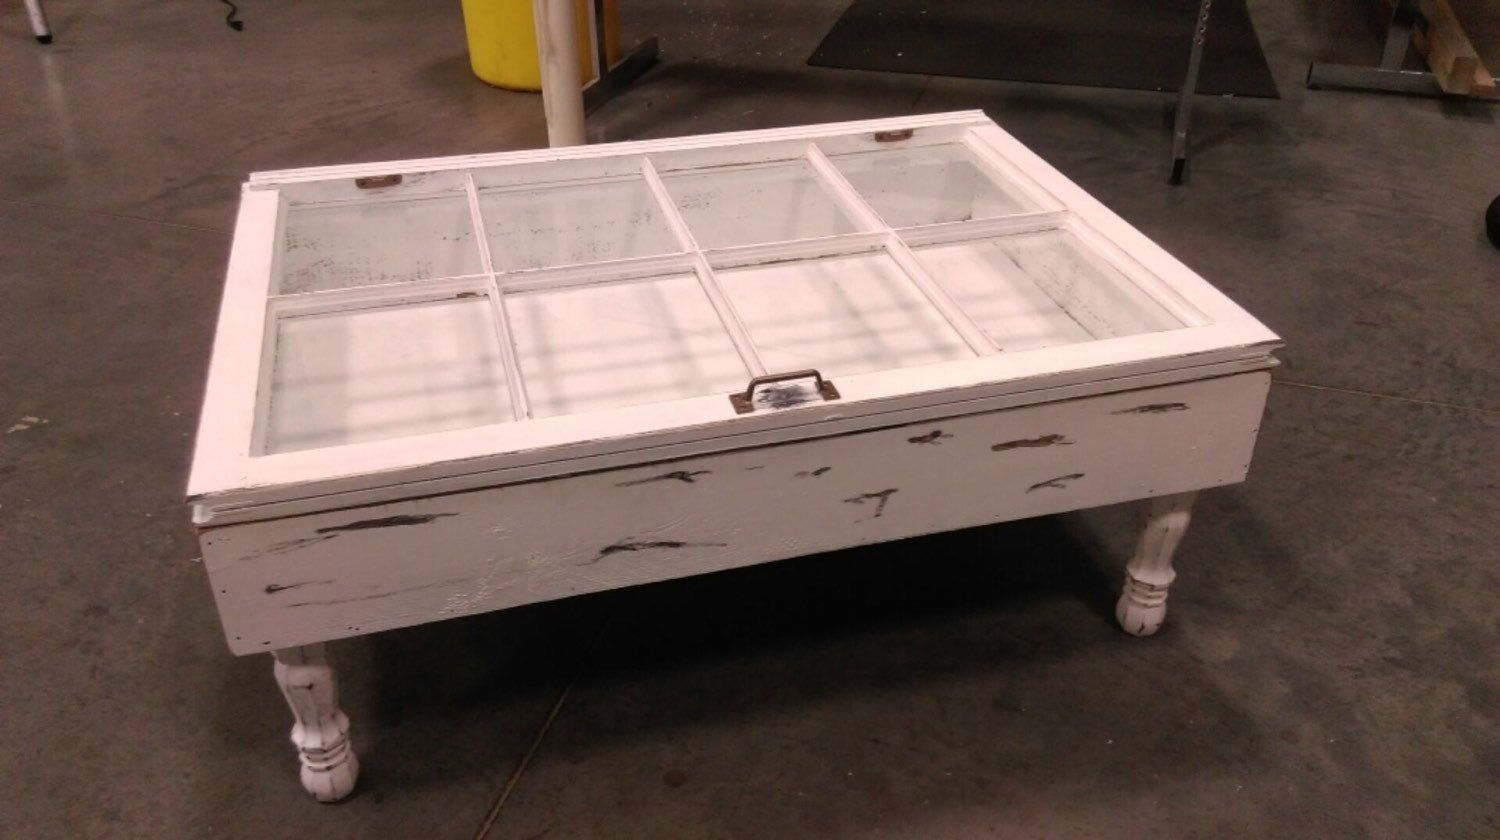 Best Shadow Box Ideas Pictures Decor And Remodel Window Coffee Table Coffee Table Shadow Box Coffee Table